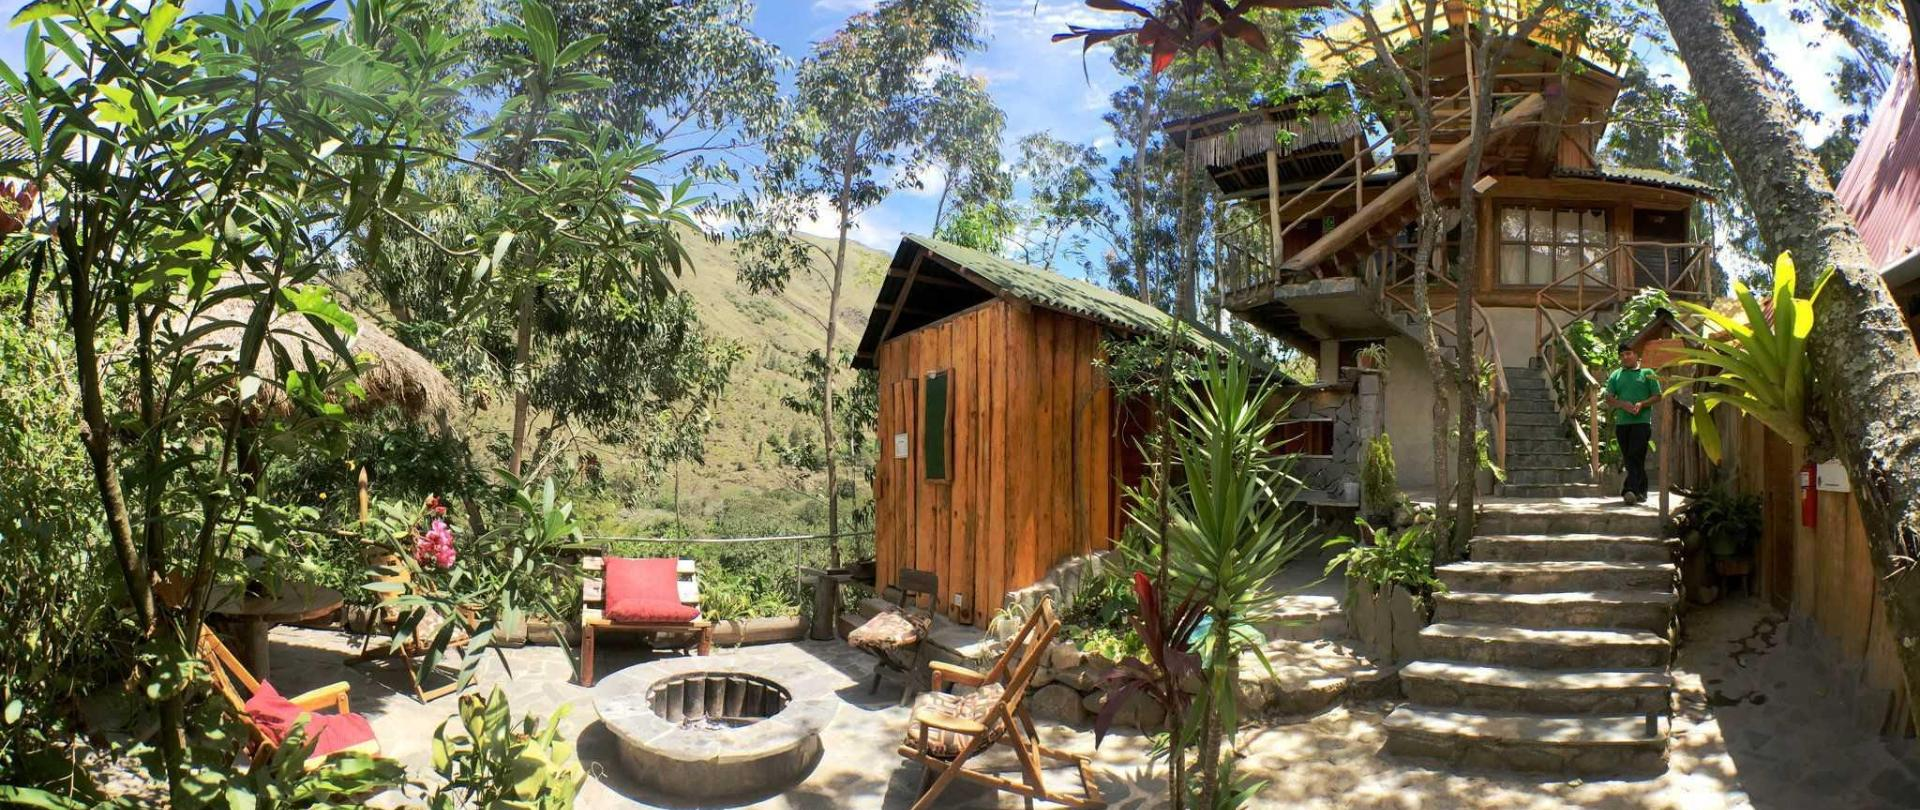 eco-quechua-lodge-outside-image.jpg